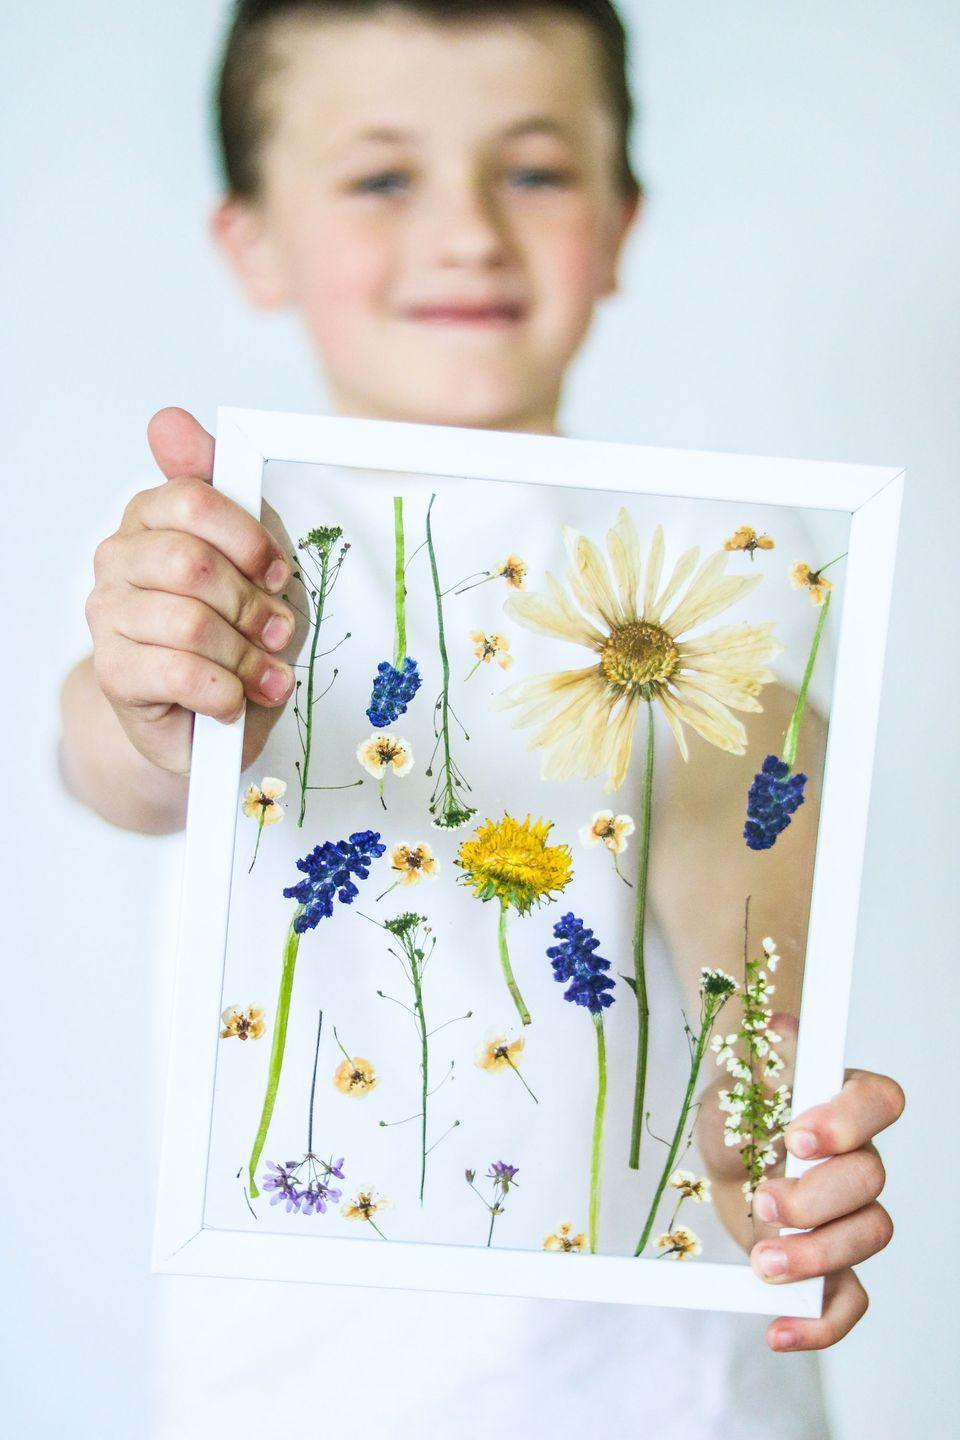 "<p>Flatten real flowers—or even weeds!—from your garden to make a one-of-a-kind Mother's Day craft. It will look especially beautiful hanging near a window with the sunlight shining through.</p><p><strong>Get the tutorial at <a href=""https://www.lilyardor.com/how-to-press-flowers-quick/"" rel=""nofollow noopener"" target=""_blank"" data-ylk=""slk:Lily Ardor"" class=""link rapid-noclick-resp"">Lily Ardor</a>.</strong><br></p><p> <a class=""link rapid-noclick-resp"" href=""https://www.amazon.com/RPJC-Picture-Definition-Display-mounting/dp/B06Y2HNDXQ?tag=syn-yahoo-20&ascsubtag=%5Bartid%7C10050.g.4233%5Bsrc%7Cyahoo-us"" rel=""nofollow noopener"" target=""_blank"" data-ylk=""slk:SHOP PICTURE FRAMES"">SHOP PICTURE FRAMES</a></p>"